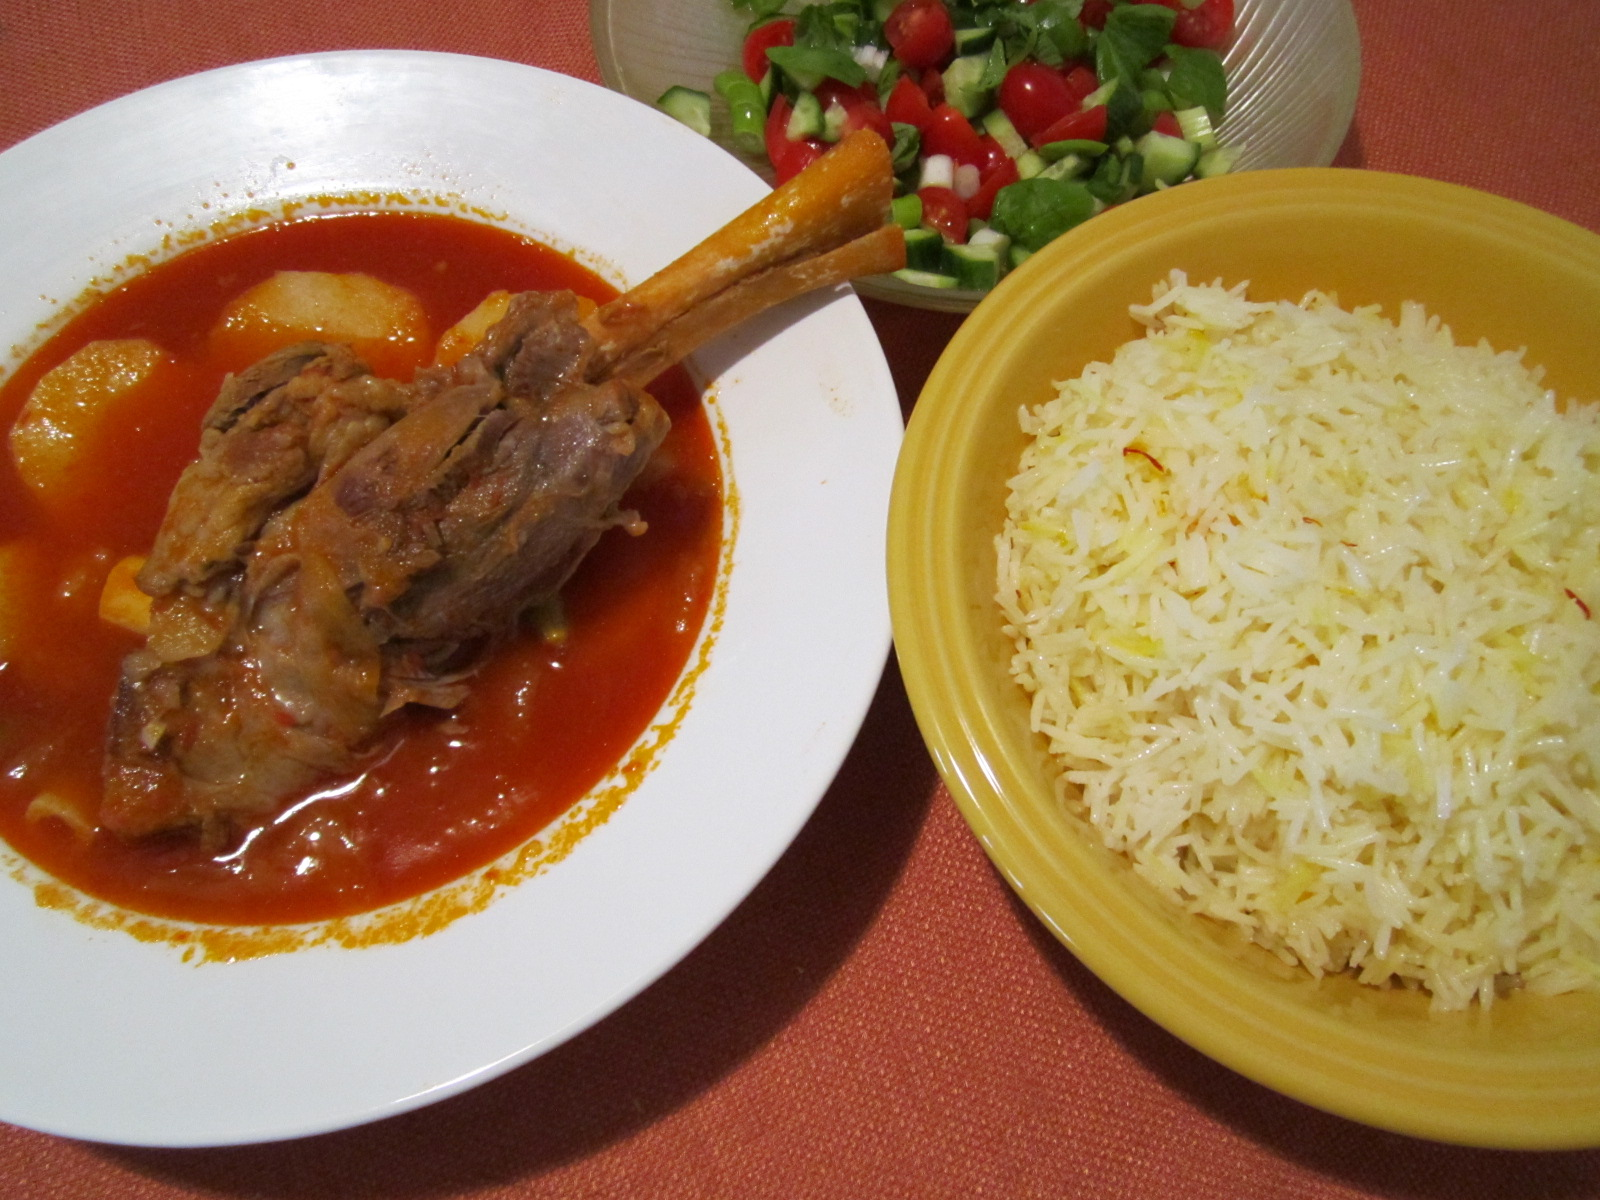 The Iraqi Family Cookbook: Lamb Shanks with Potatoes